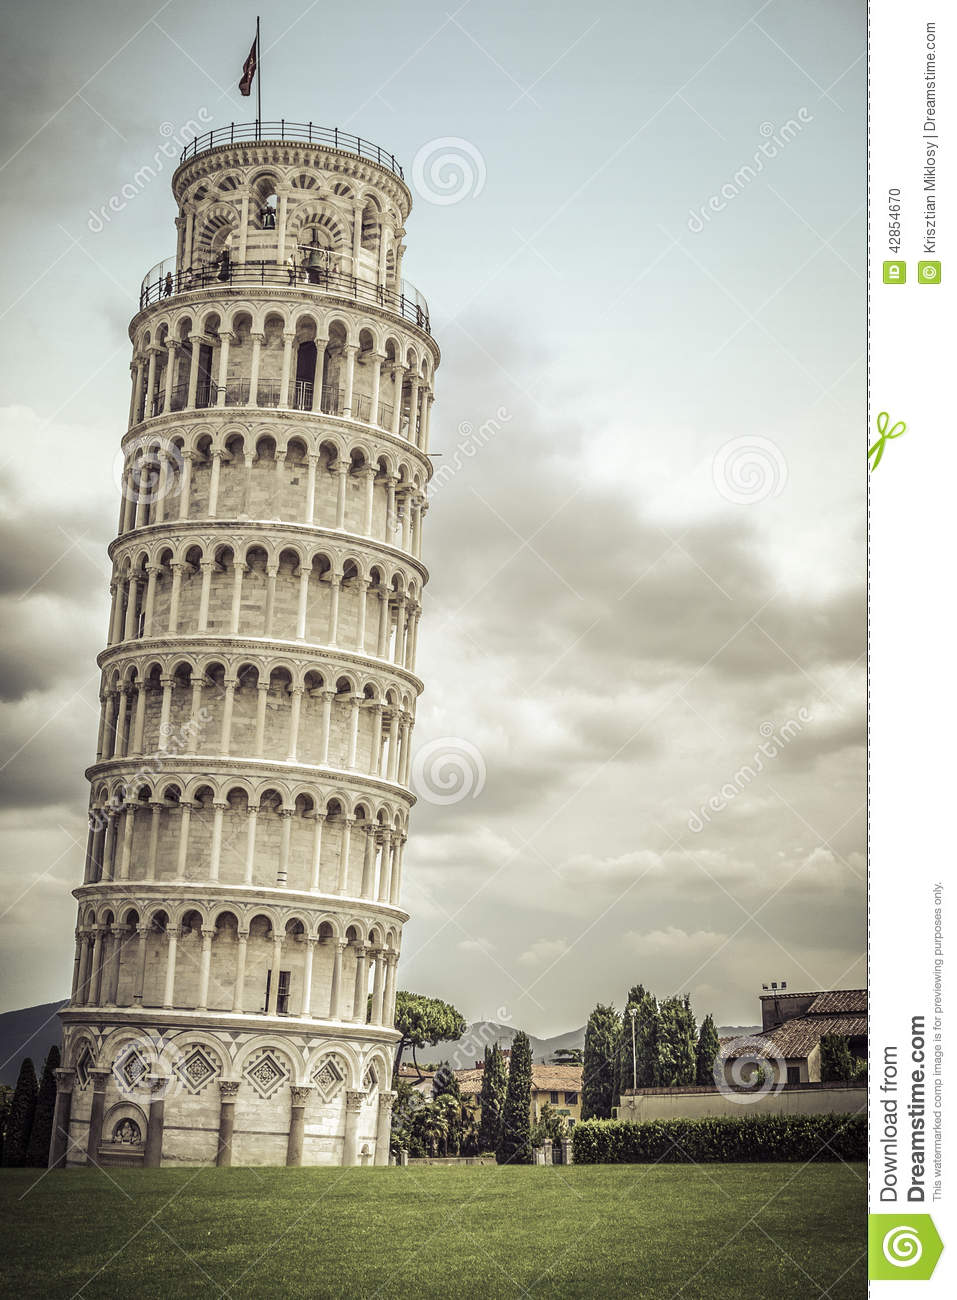 Leaning tower of pisa italy stock photo image 42854670 for Important buildings in the world